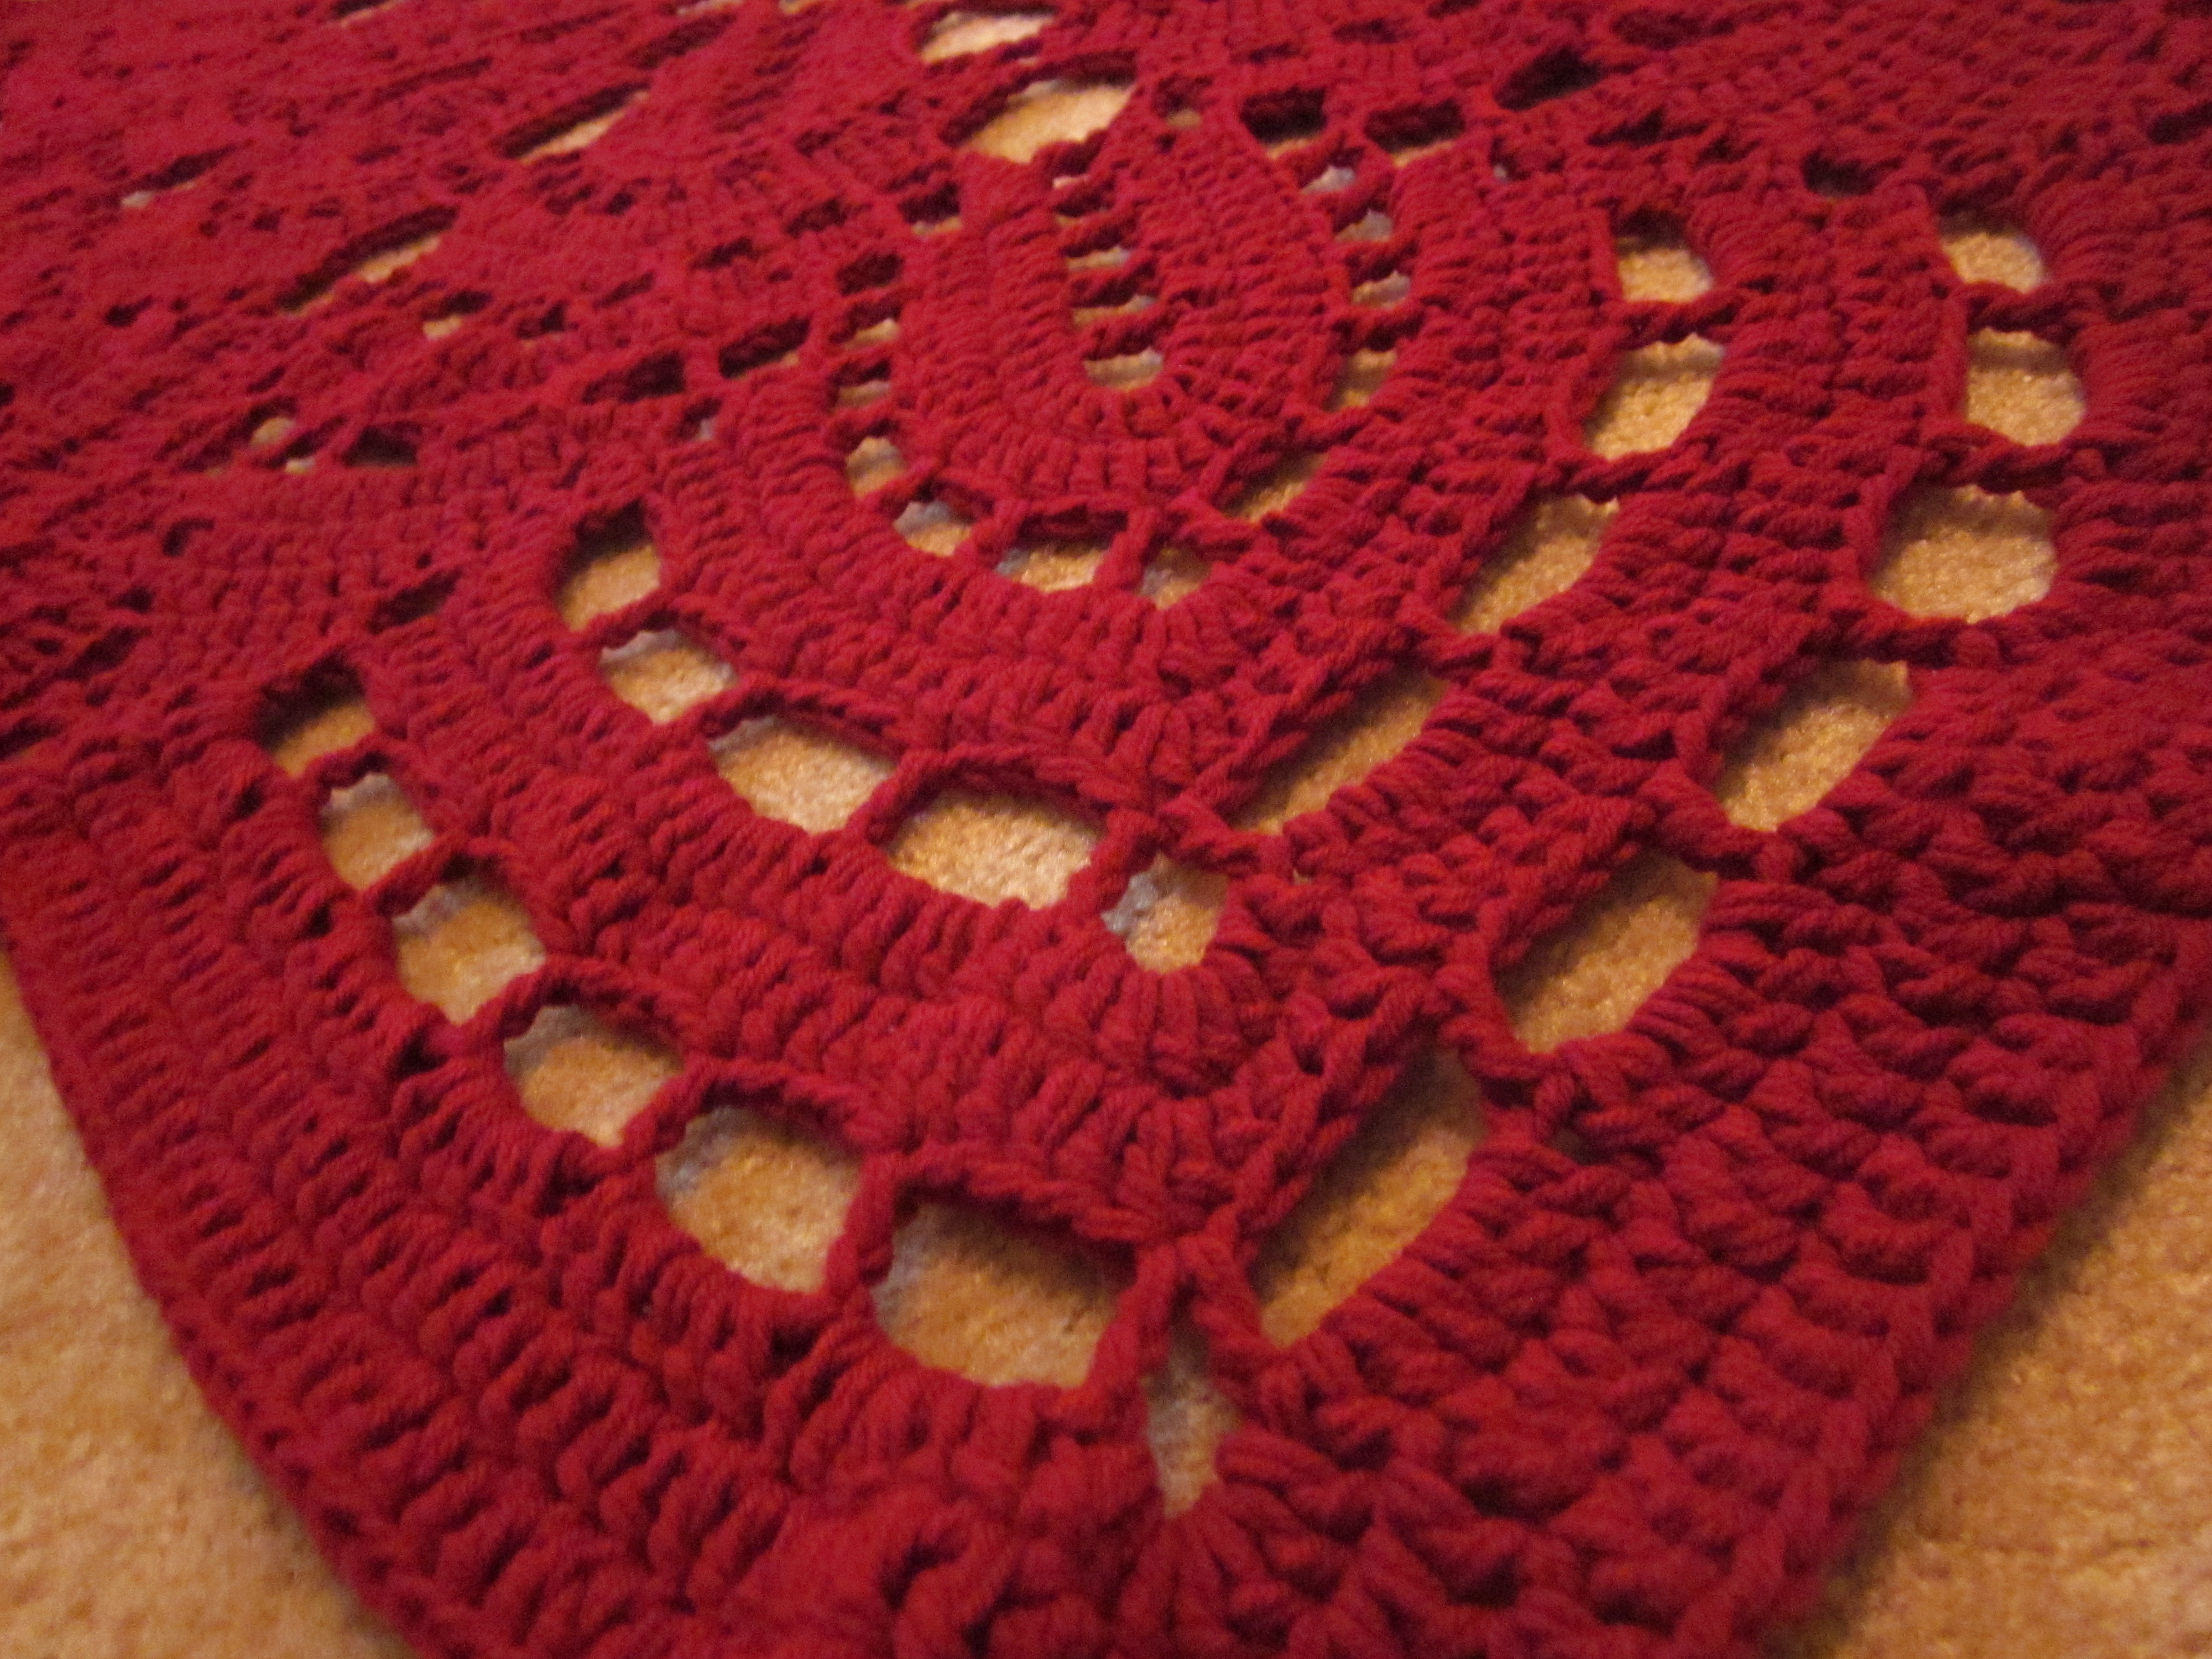 Red Kitchen Rugs And Mats Red Kitchen Rug Nice Look Home Design Ideas Picture Gallery